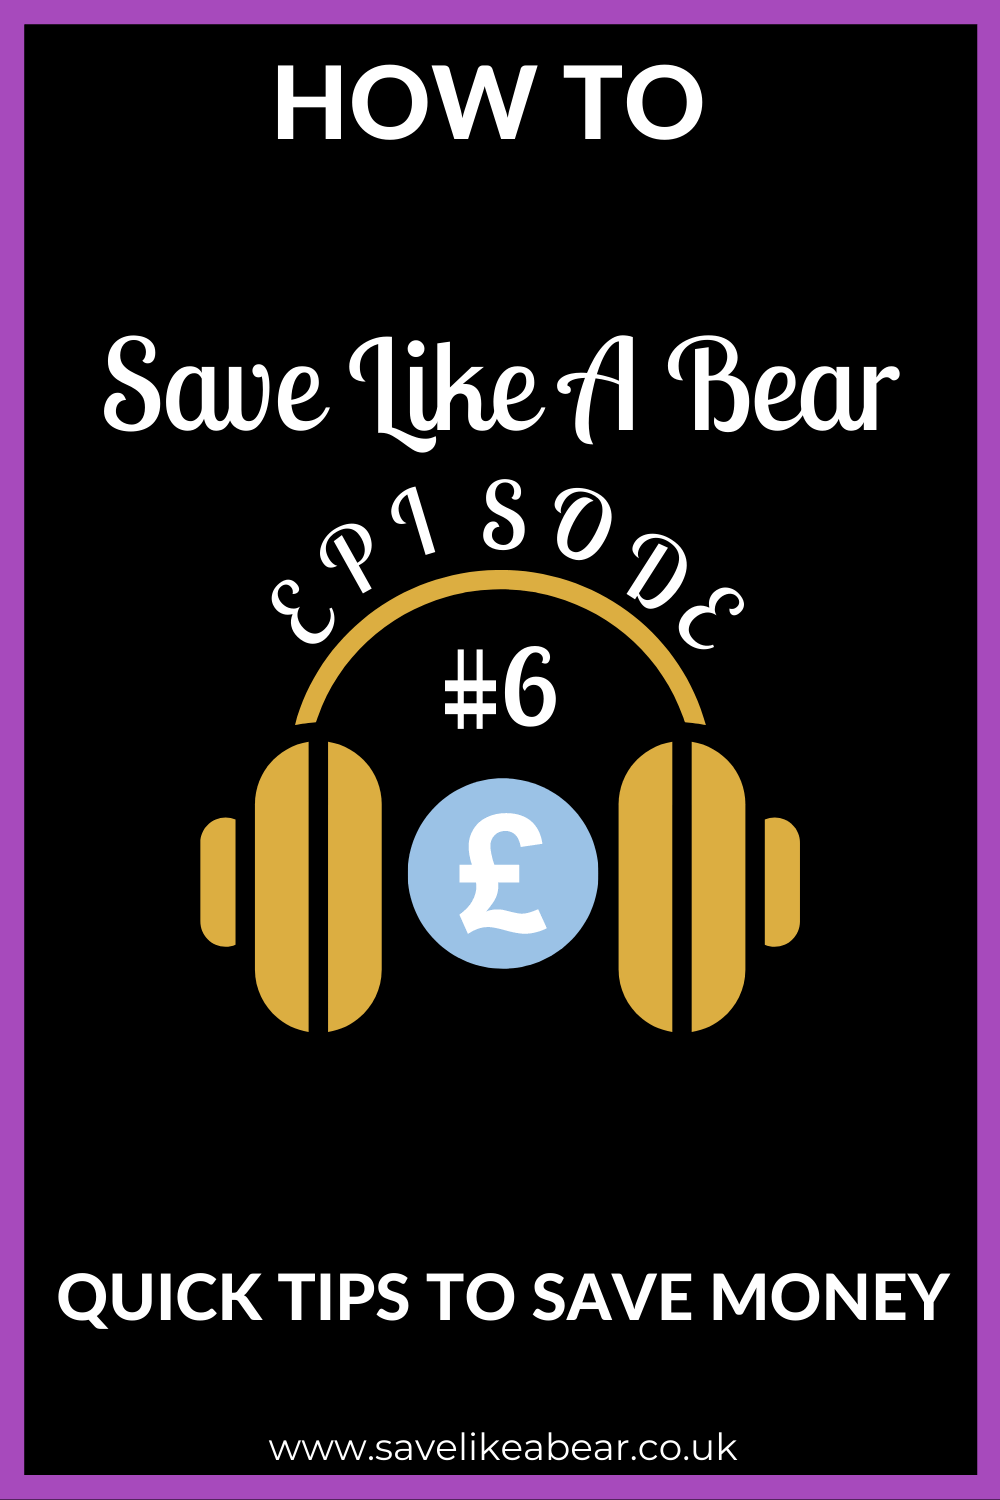 How to save like a bear podcast episode 6 quick tips to save money